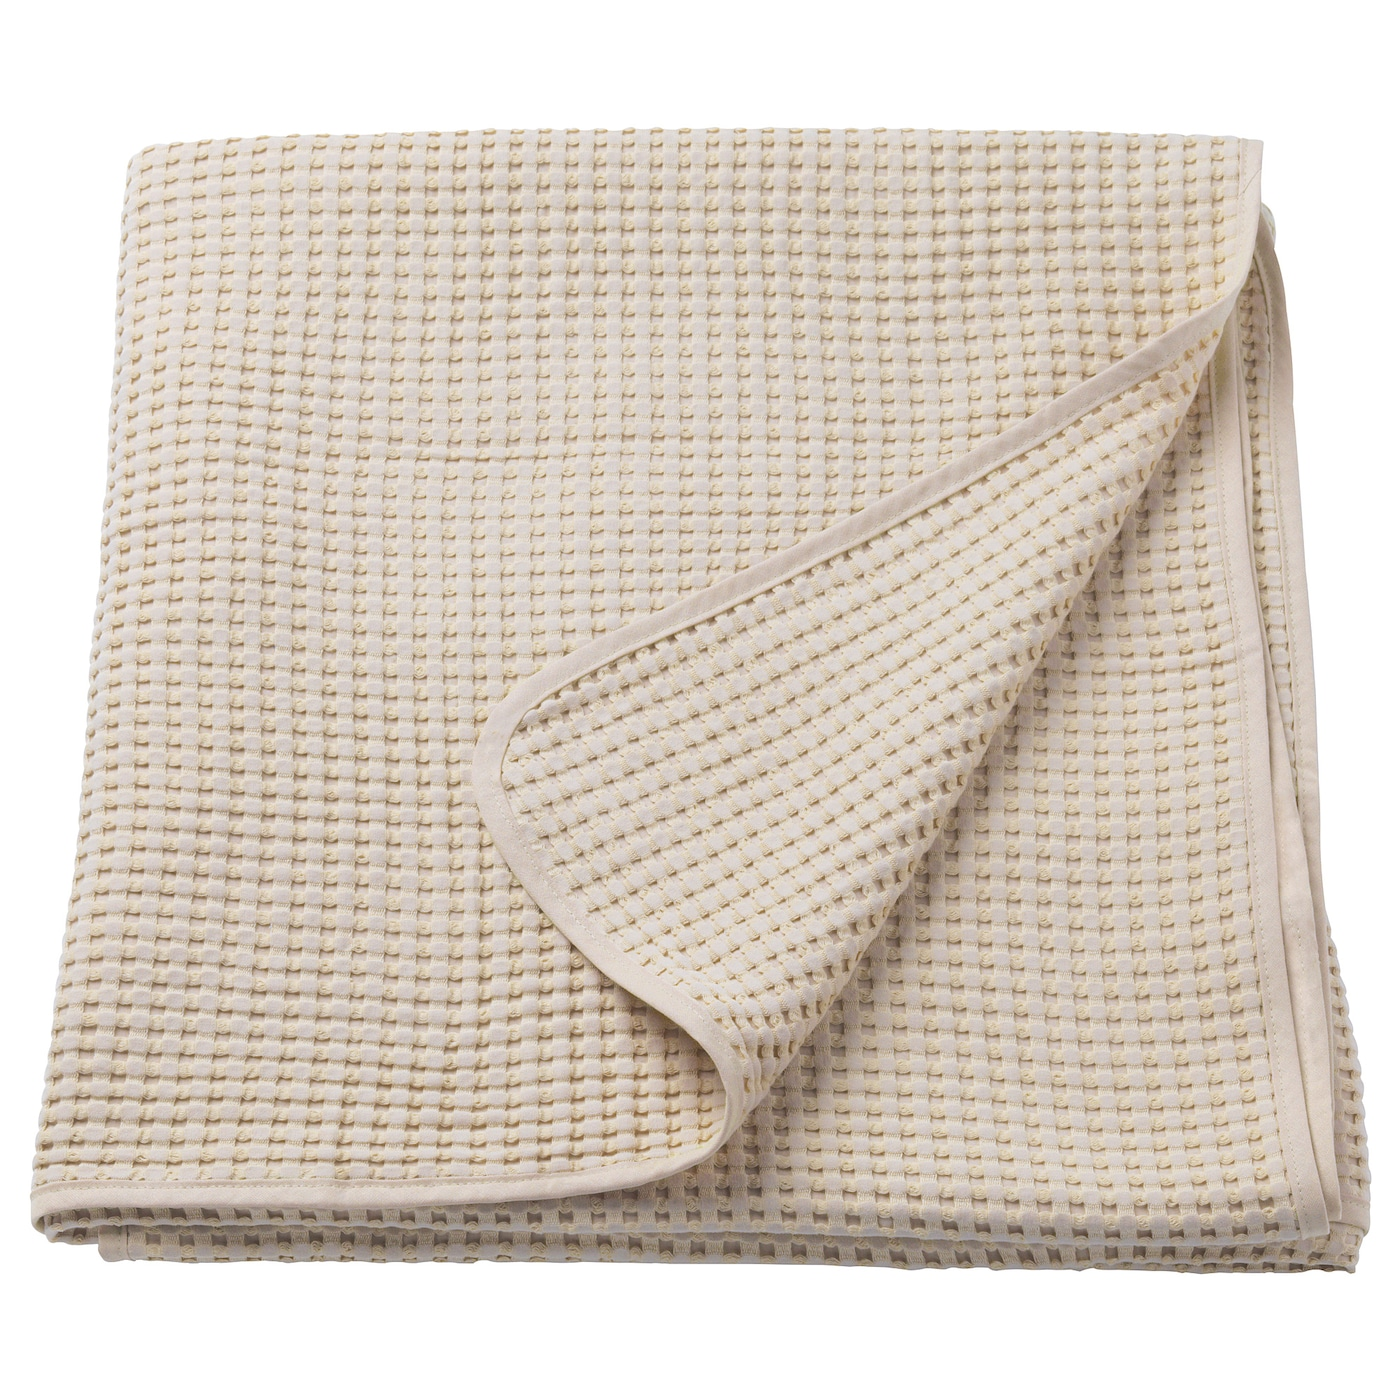 IKEA VÅRELD bedspread Can be used as bedspread for a single size bed or as a large size blanket.